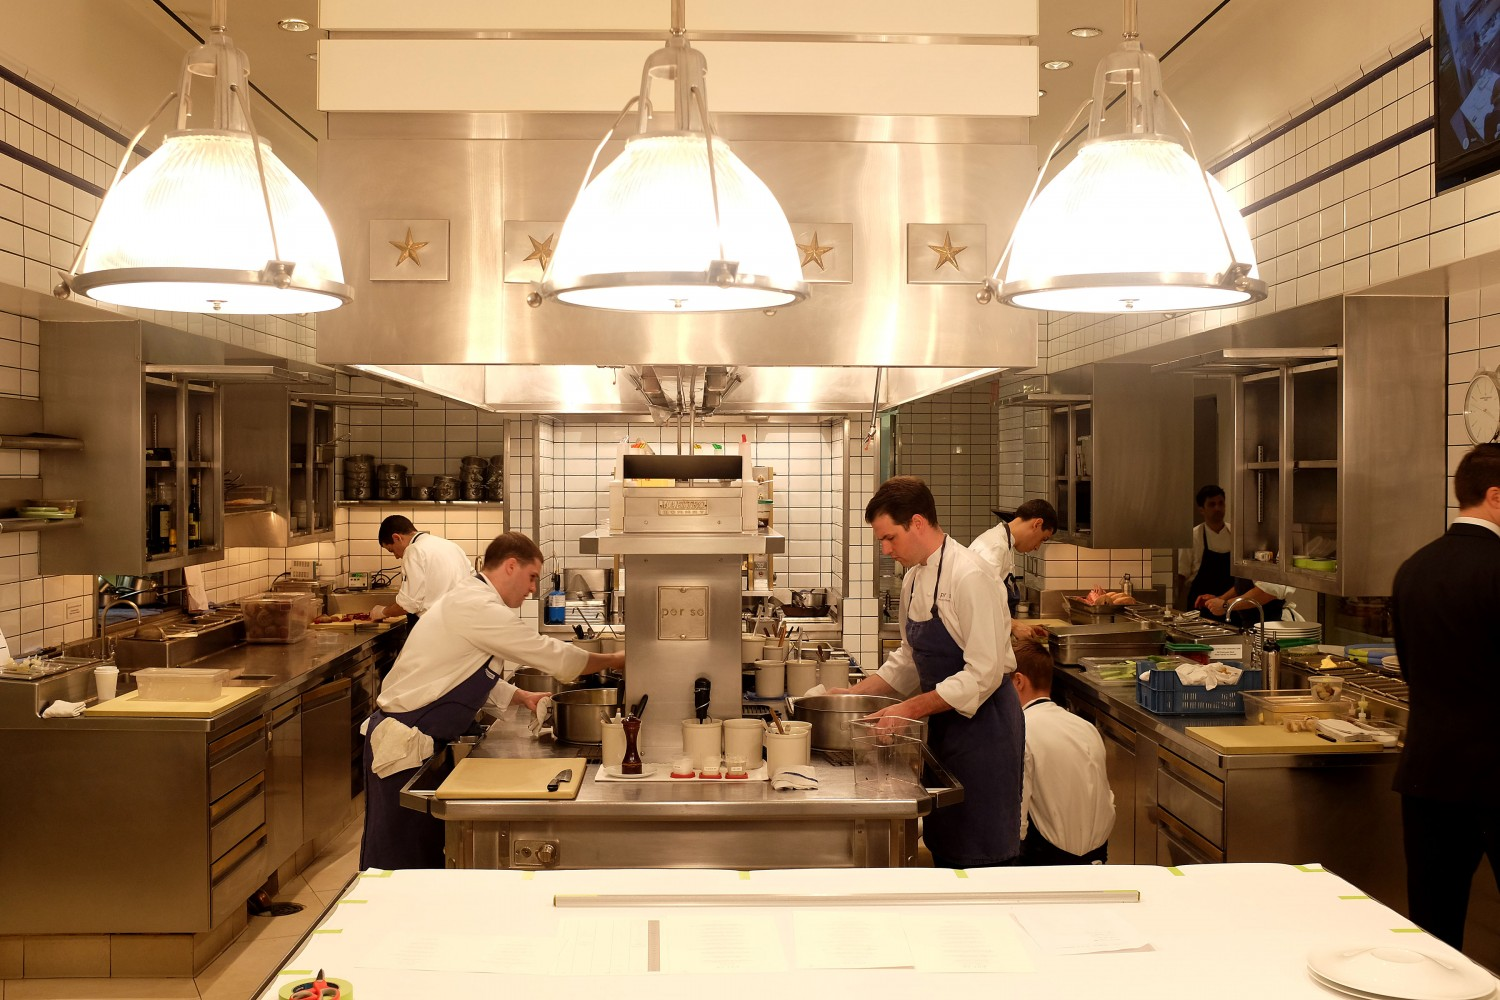 The kitchen at Thomas Keller's Per Se New York